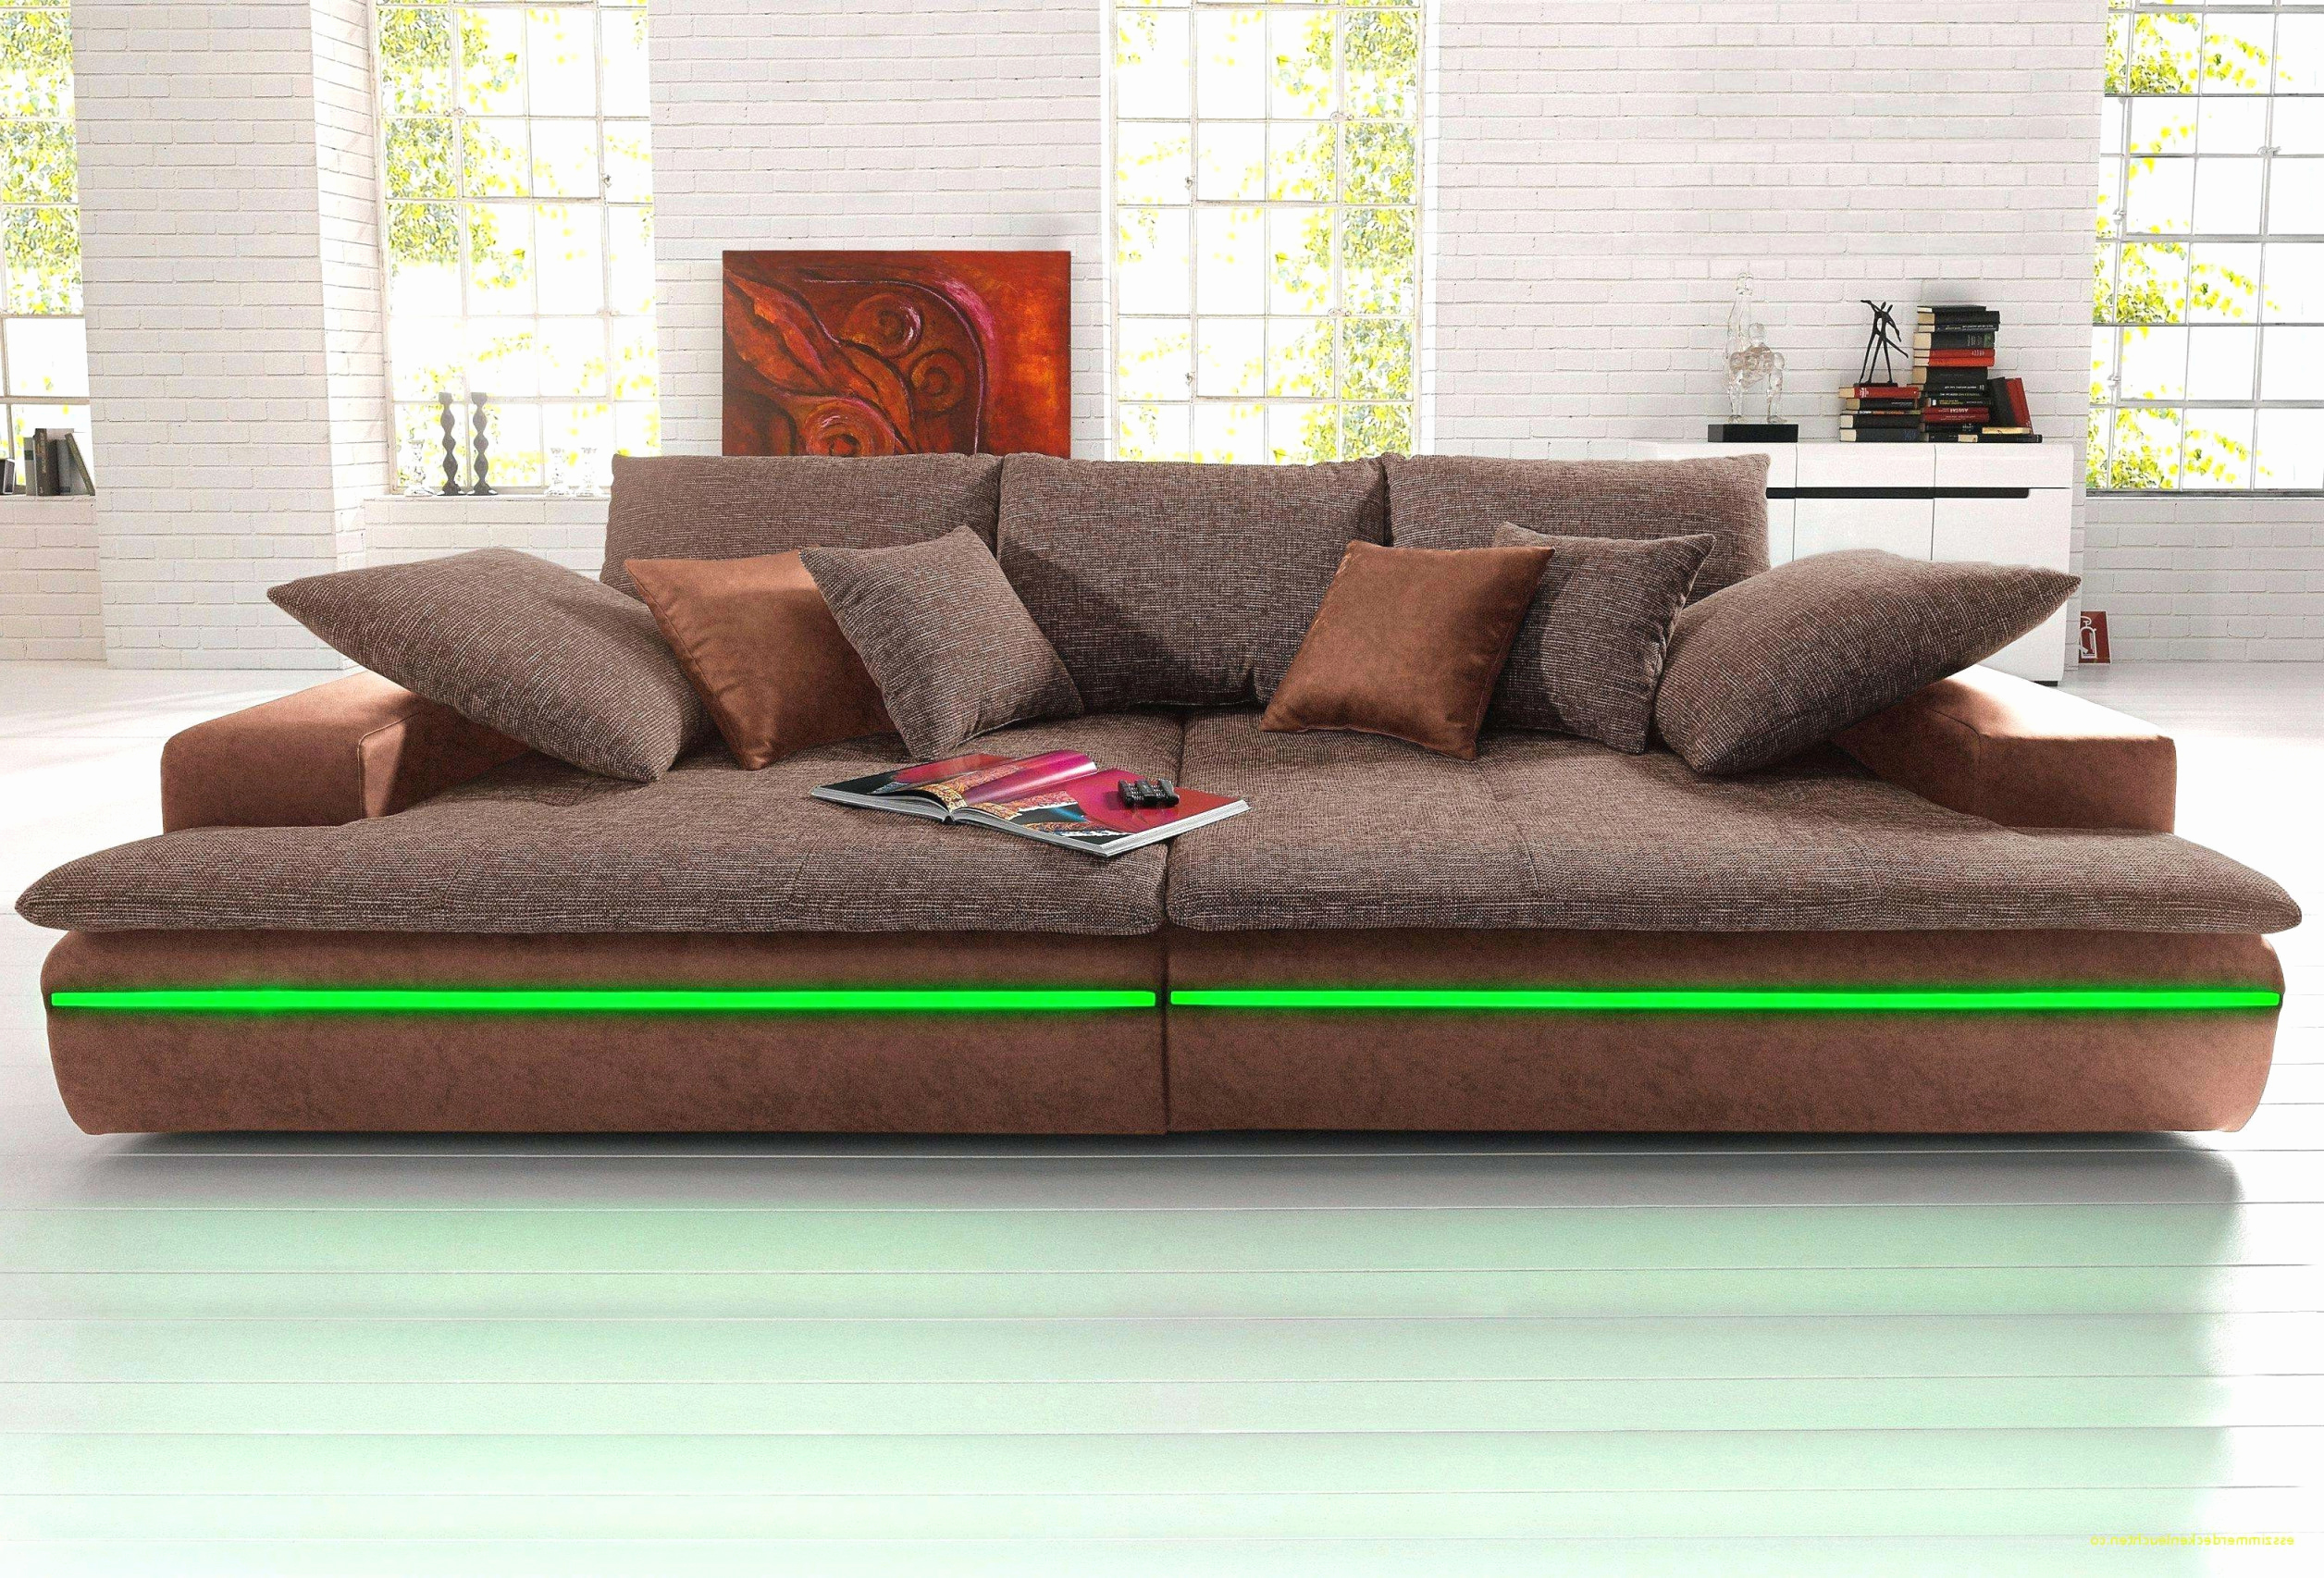 Xxl sofa Kolonialstil Neu 35 Moderne Xxl Tv Mobel